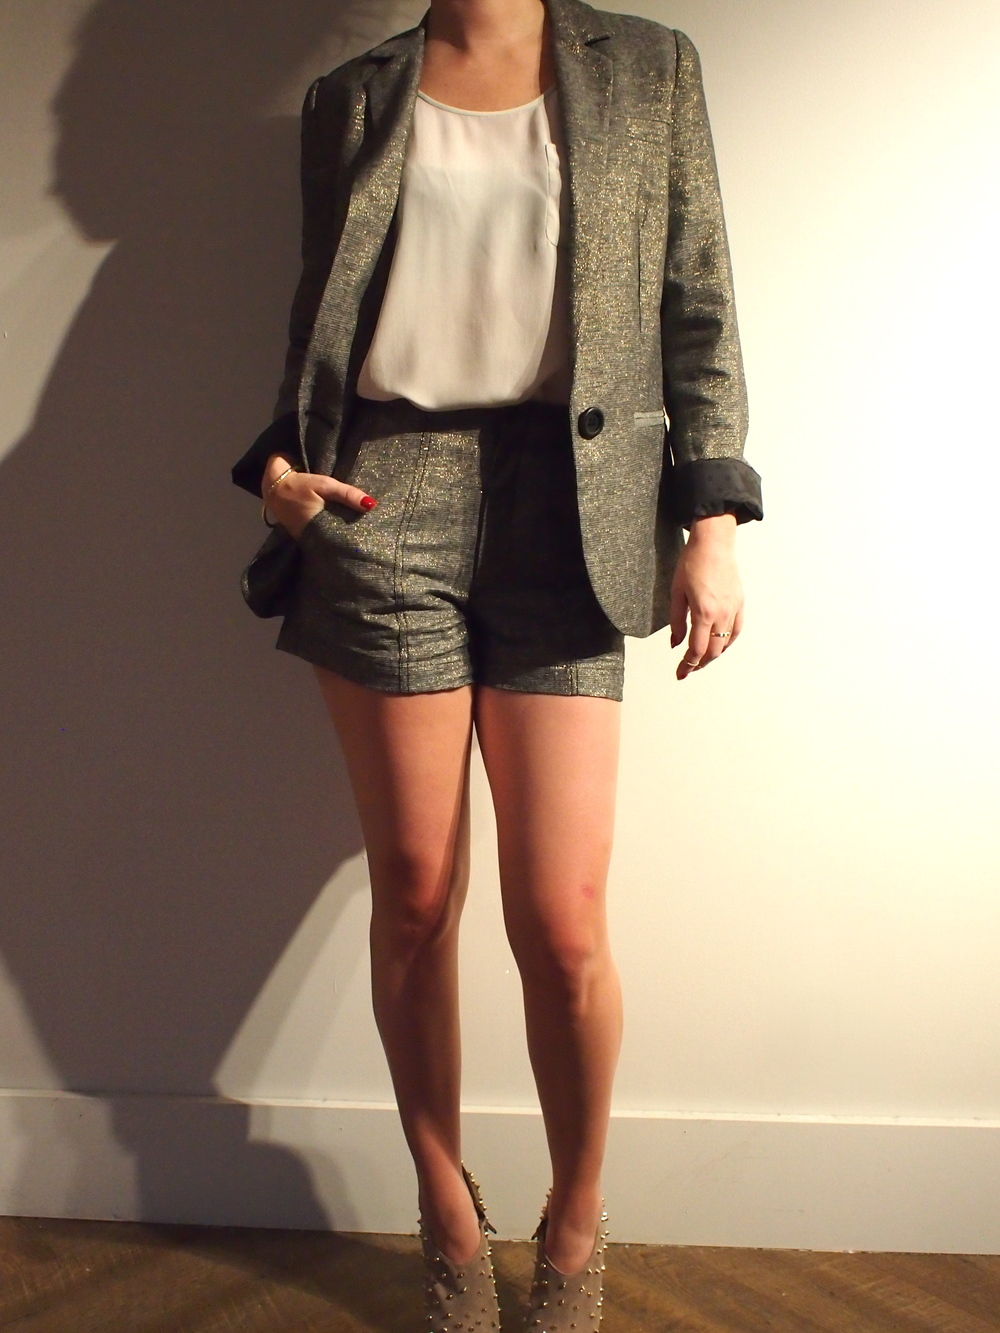 Corey Lynn - Lou Relaxed Blazer: $245  Corey Lynn - Kasey Seamed Shorts: $170  Tiger Of Sweden - Foster Tank Top: $149